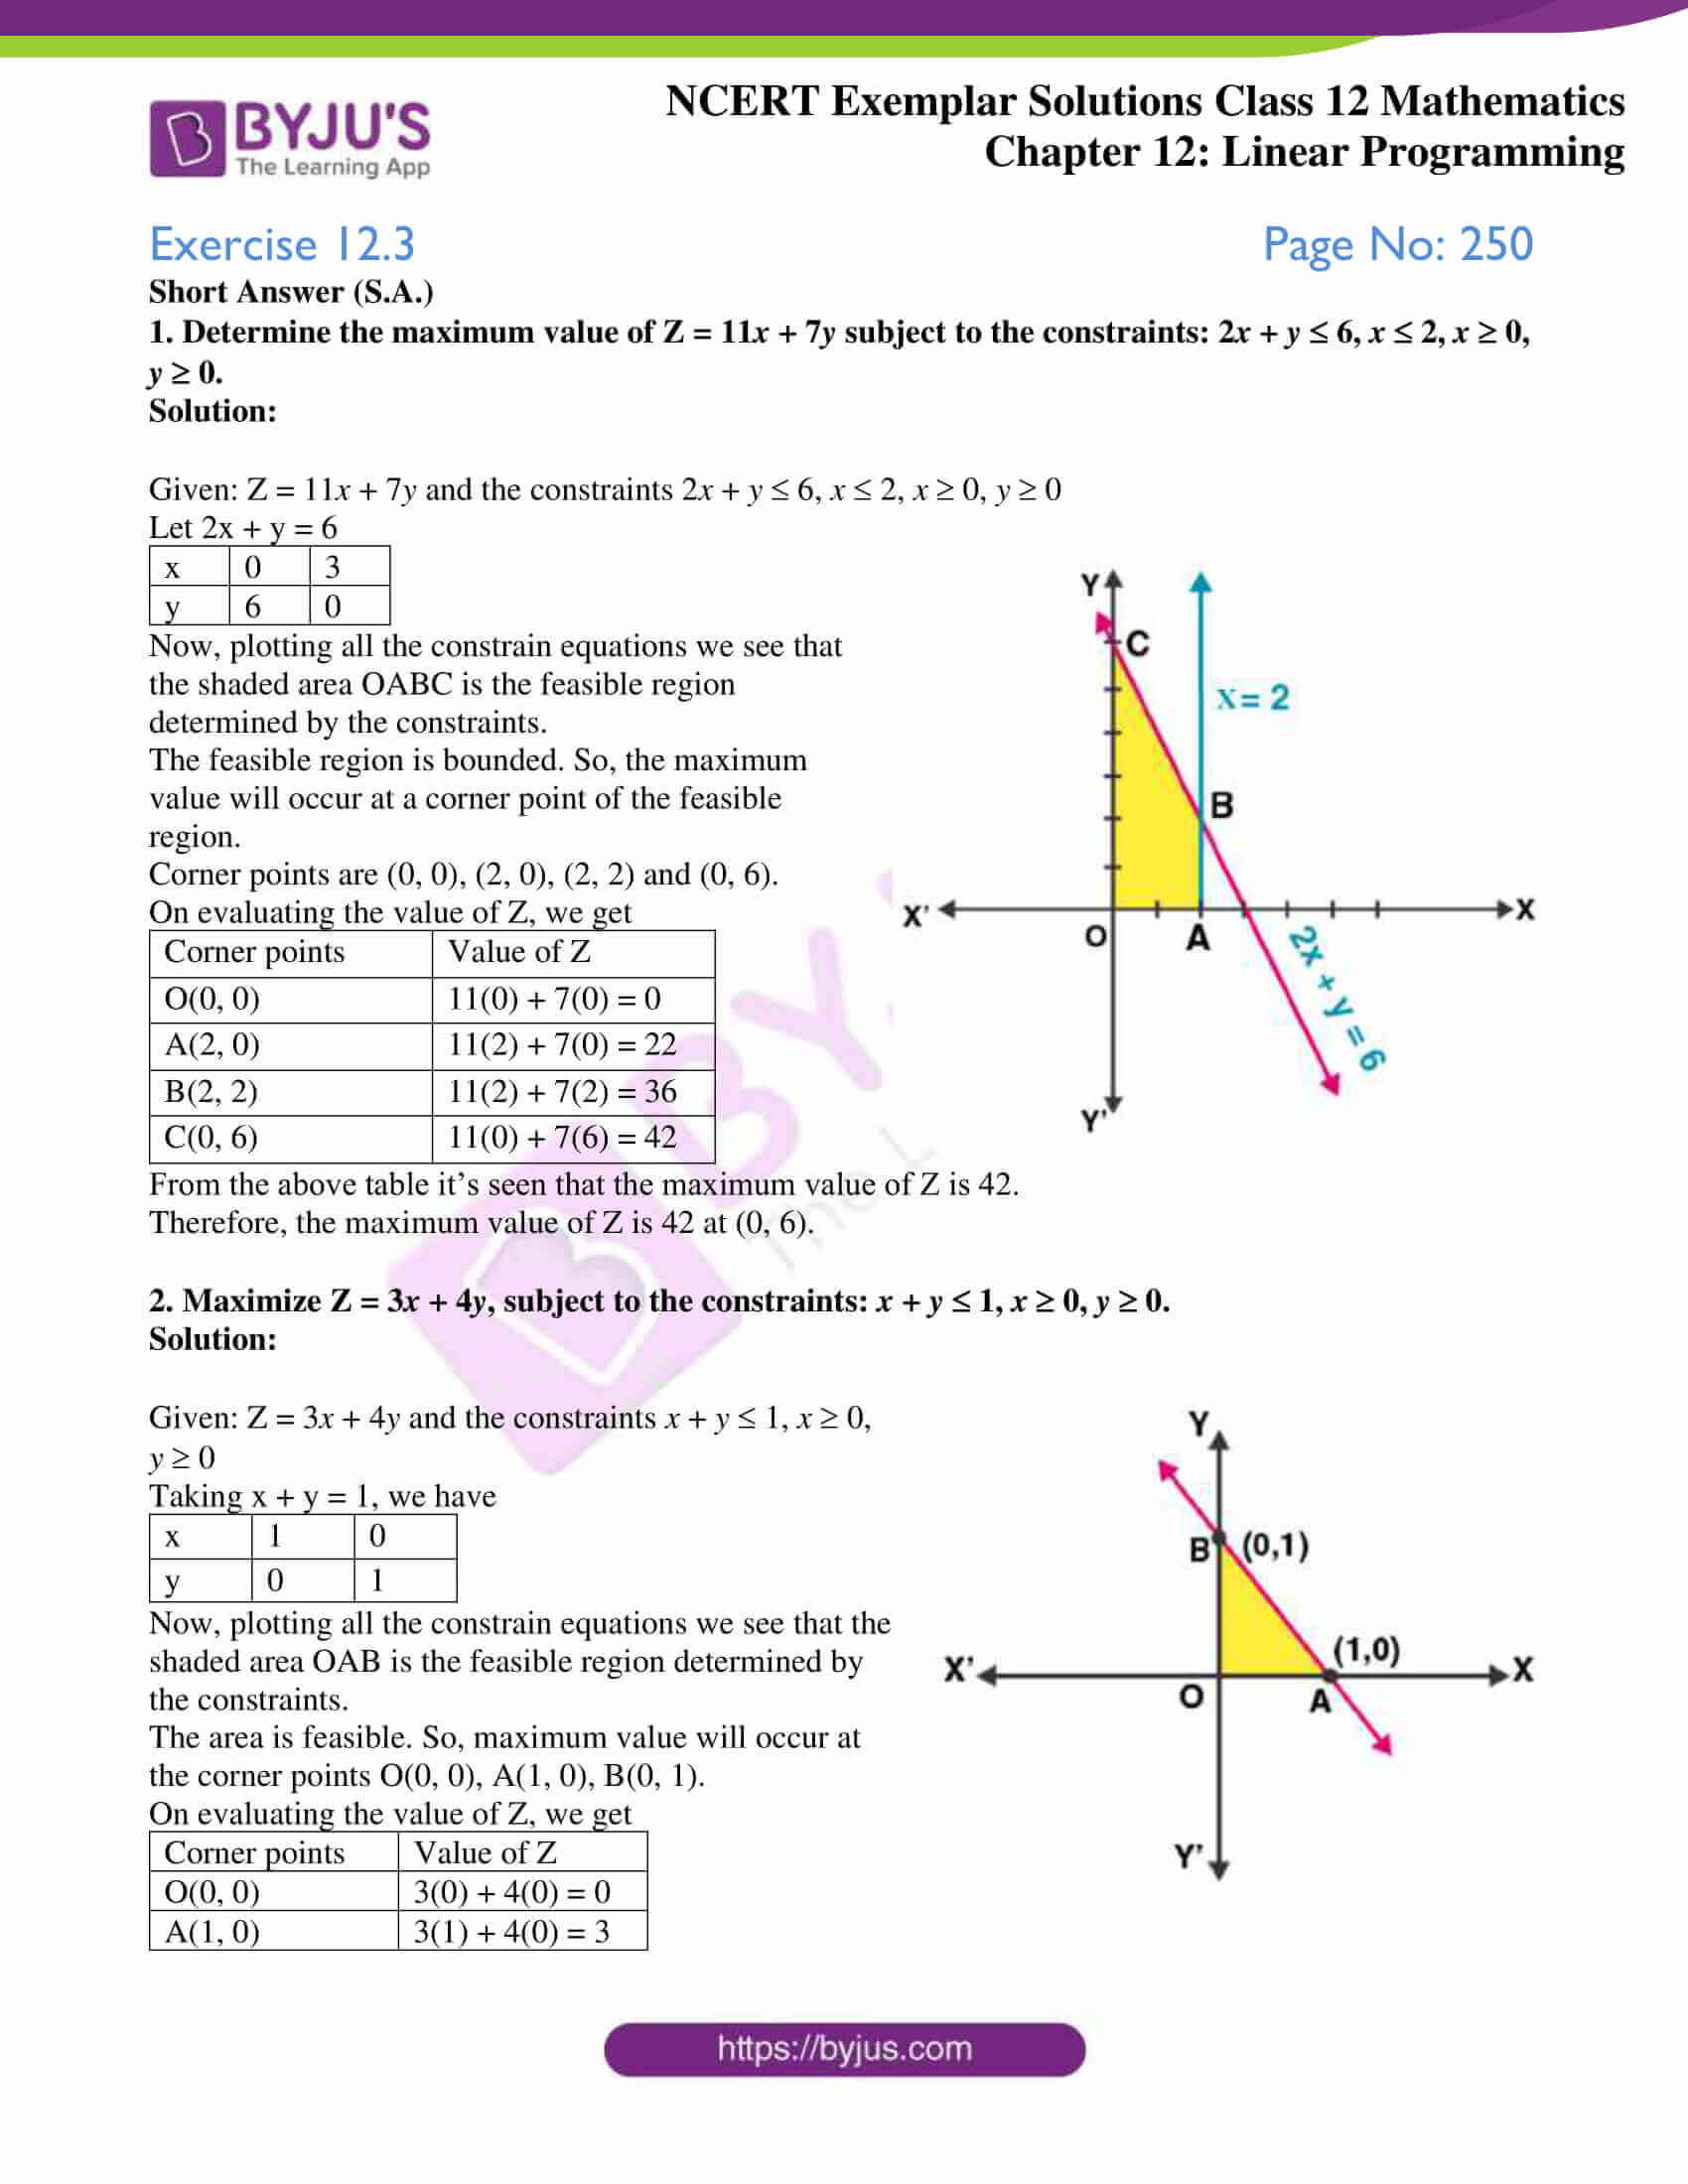 ncert exemplar sol class 12 mathematics chapter 12 01